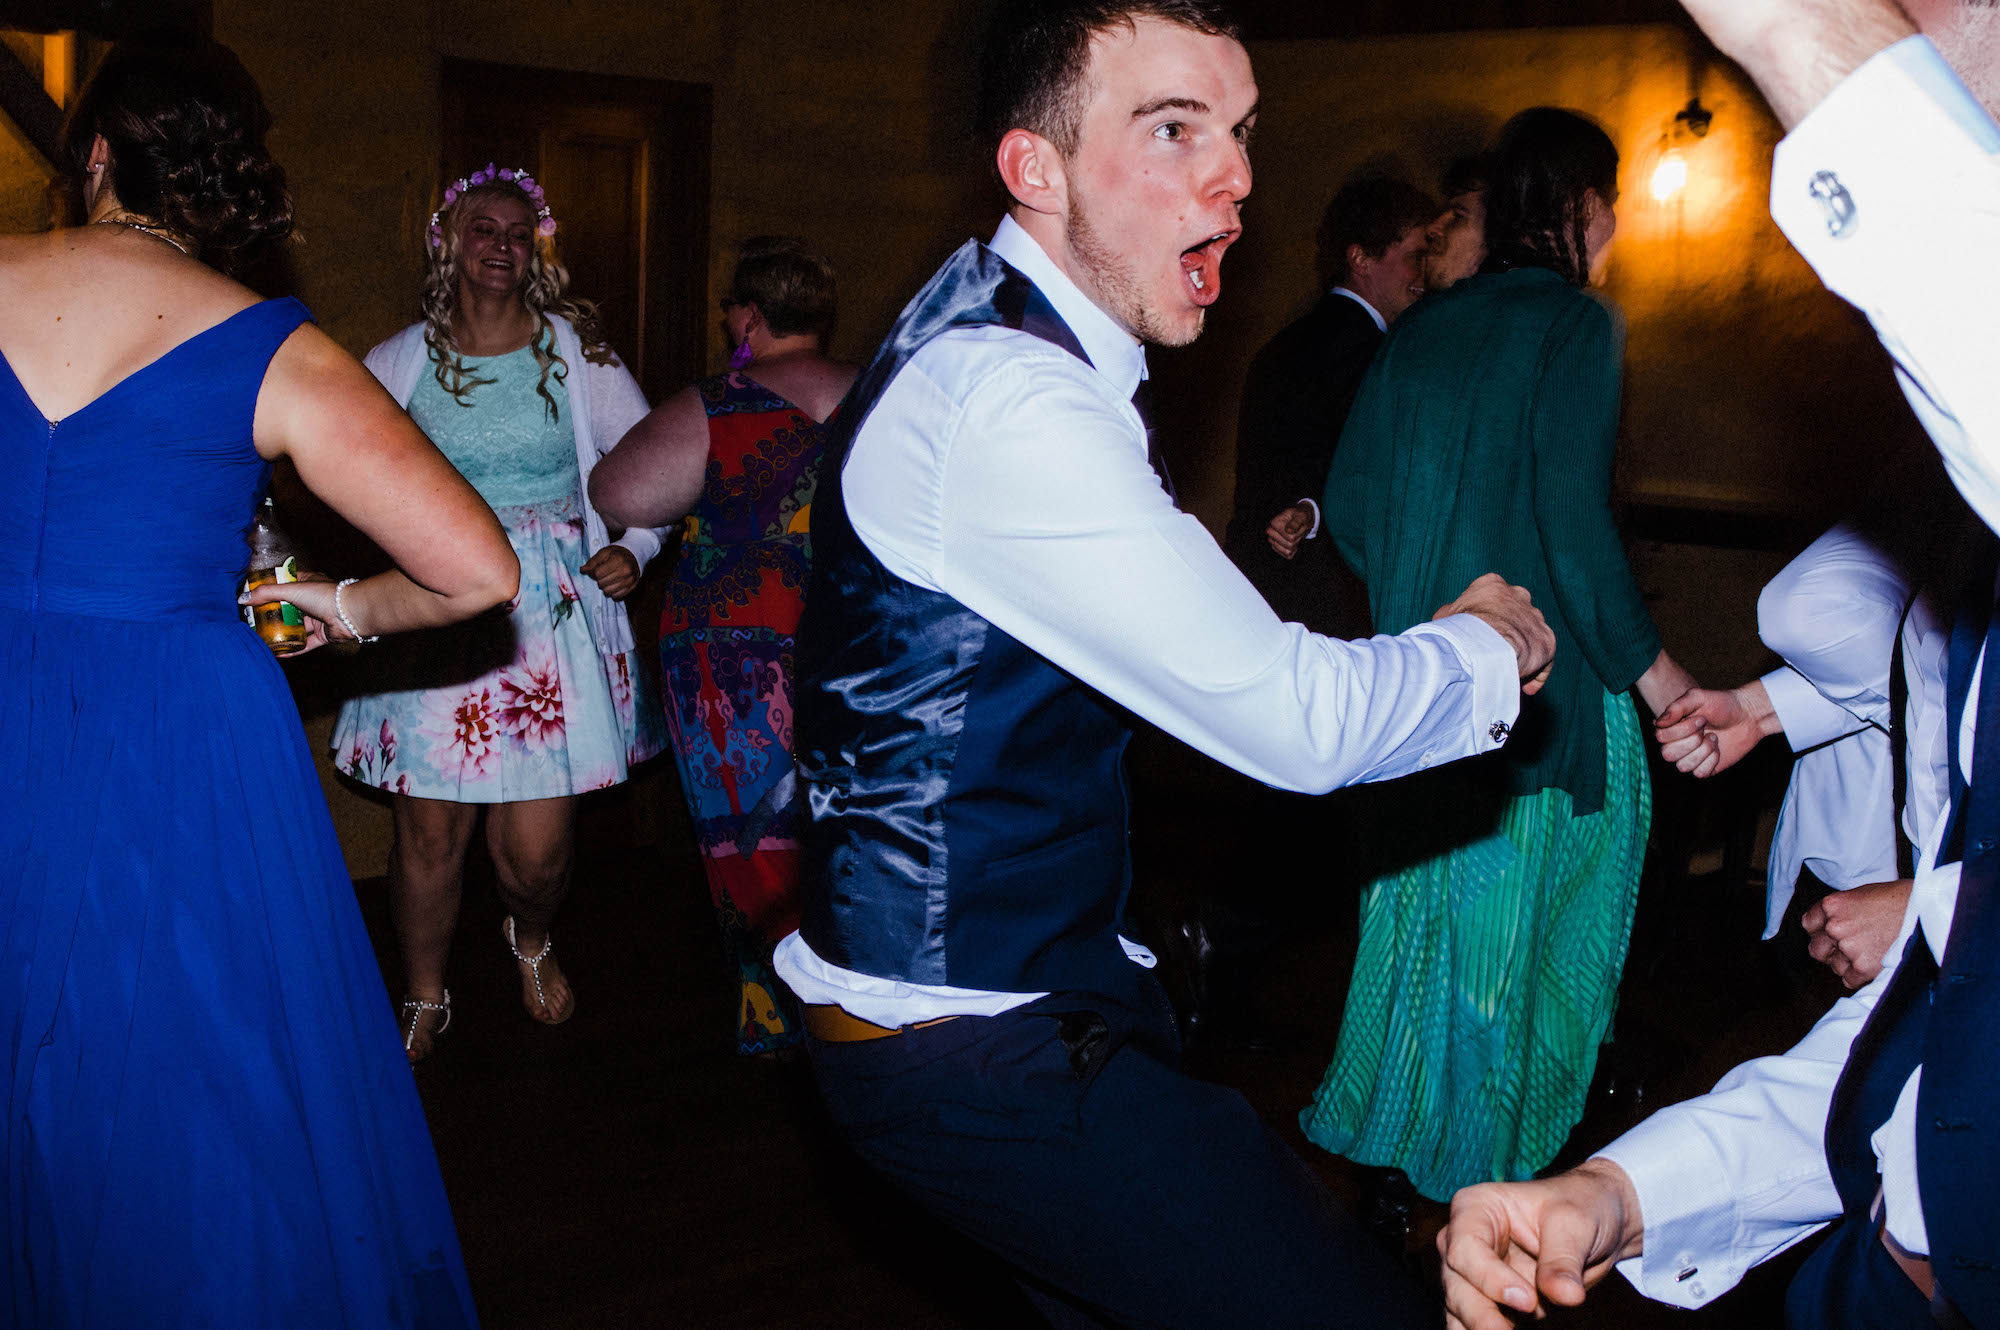 The groom on the dance floor at his wedding reception in Whitby, Western Australia.